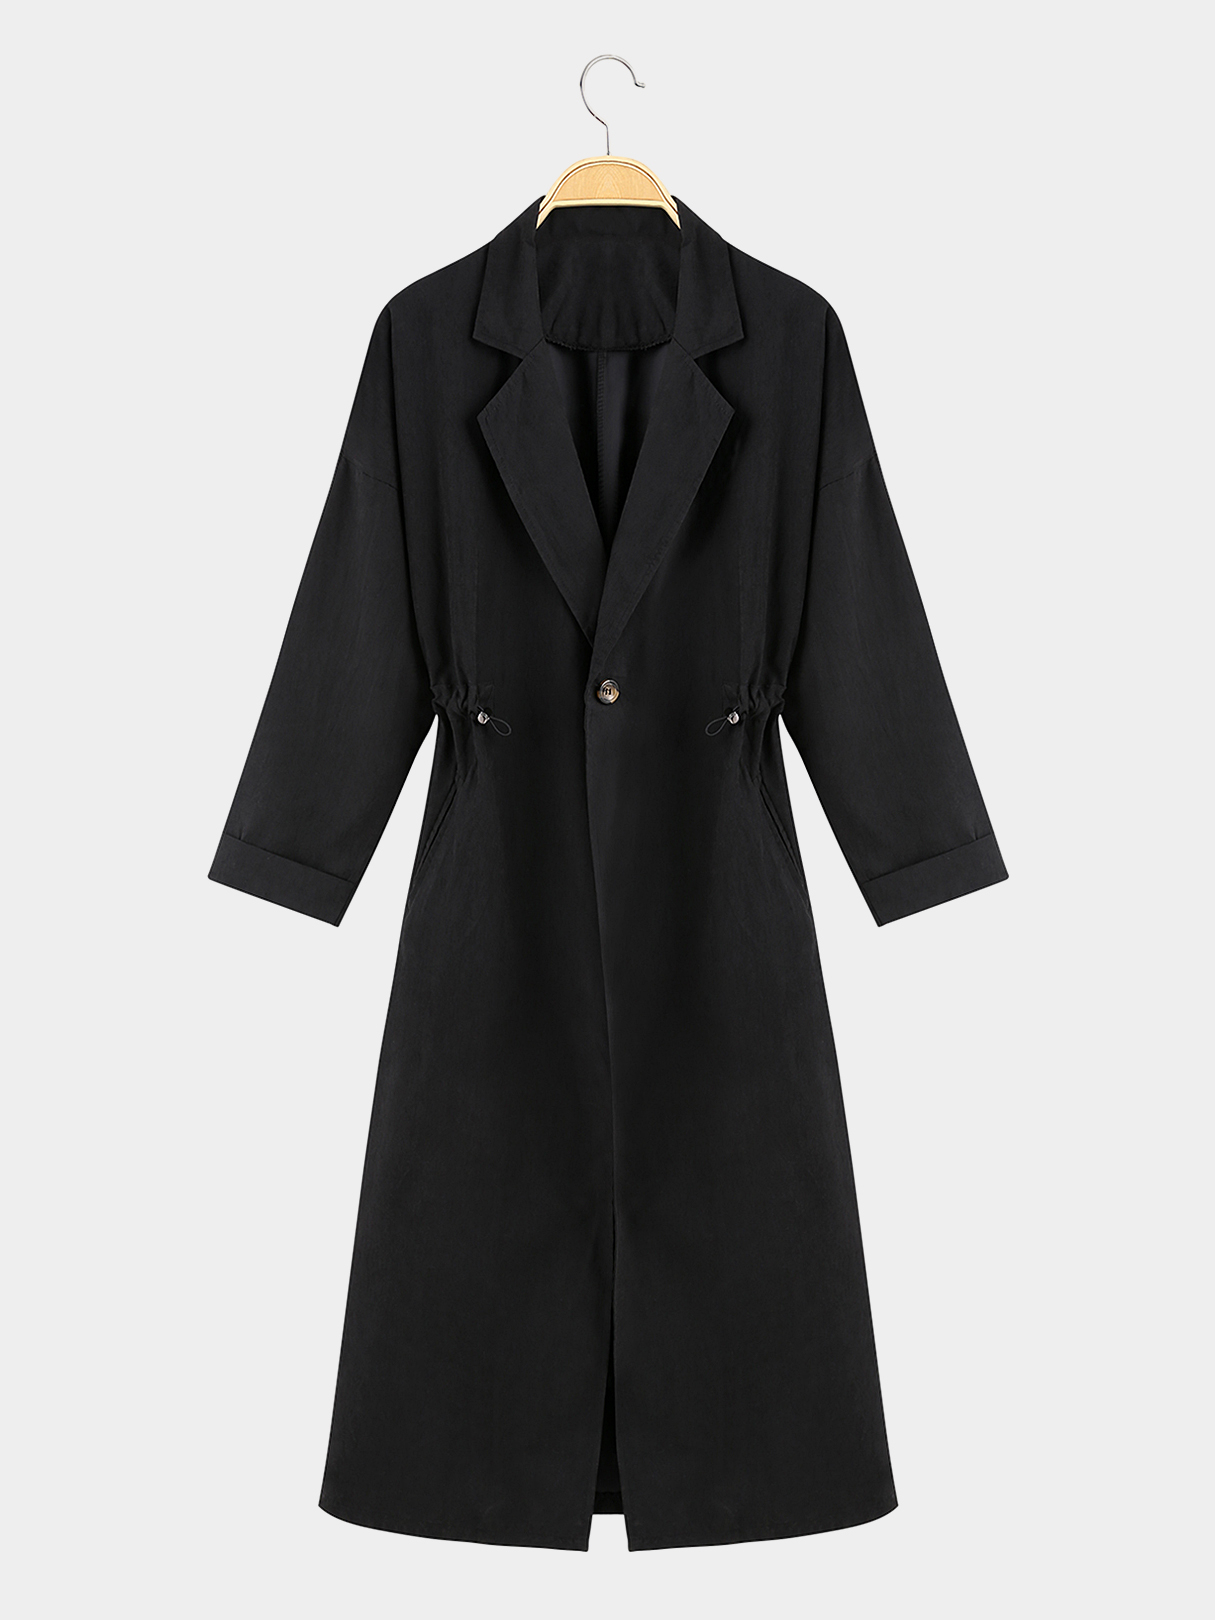 Black Lapel Collar Trench Coat With Drawstring waist